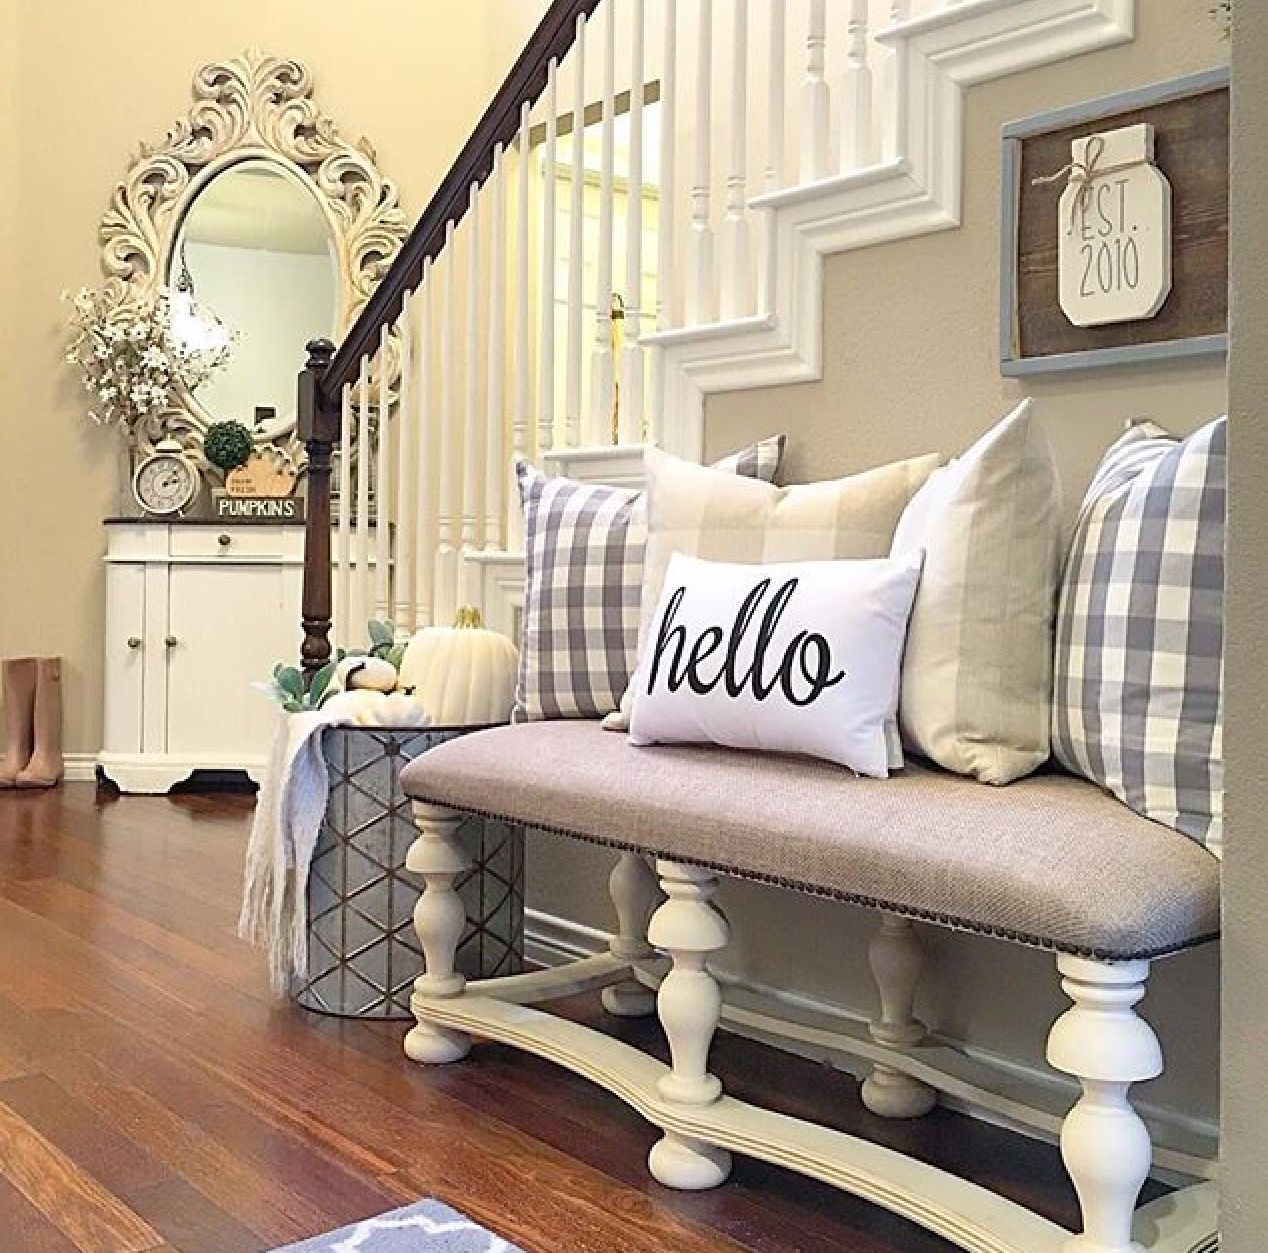 entry-1 | Decorating Ideas/Furniture | Pinterest | Entry ...